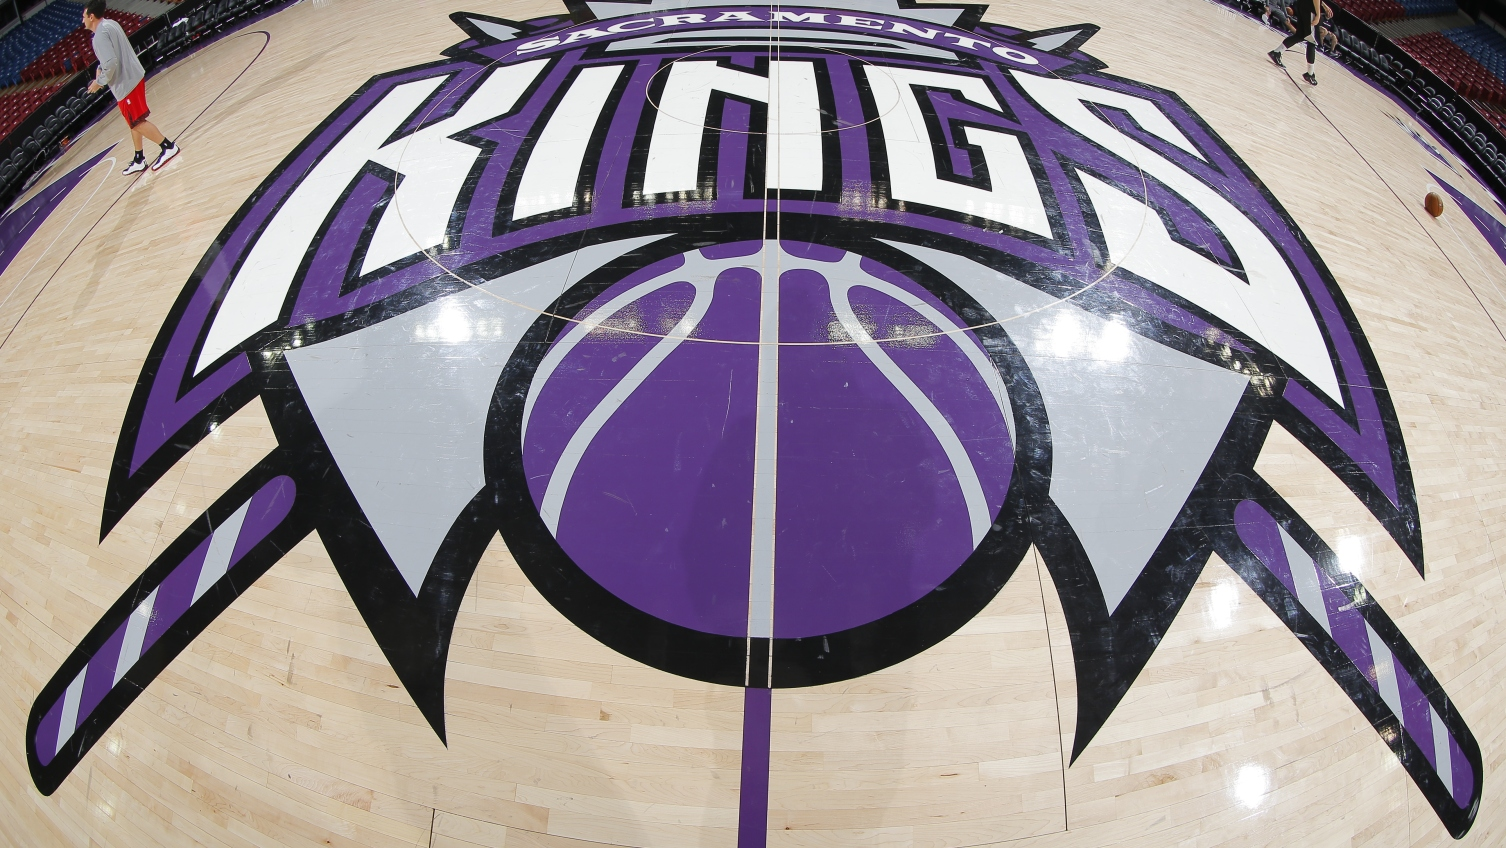 Report: Kings hire Roland Beech as head of analytics